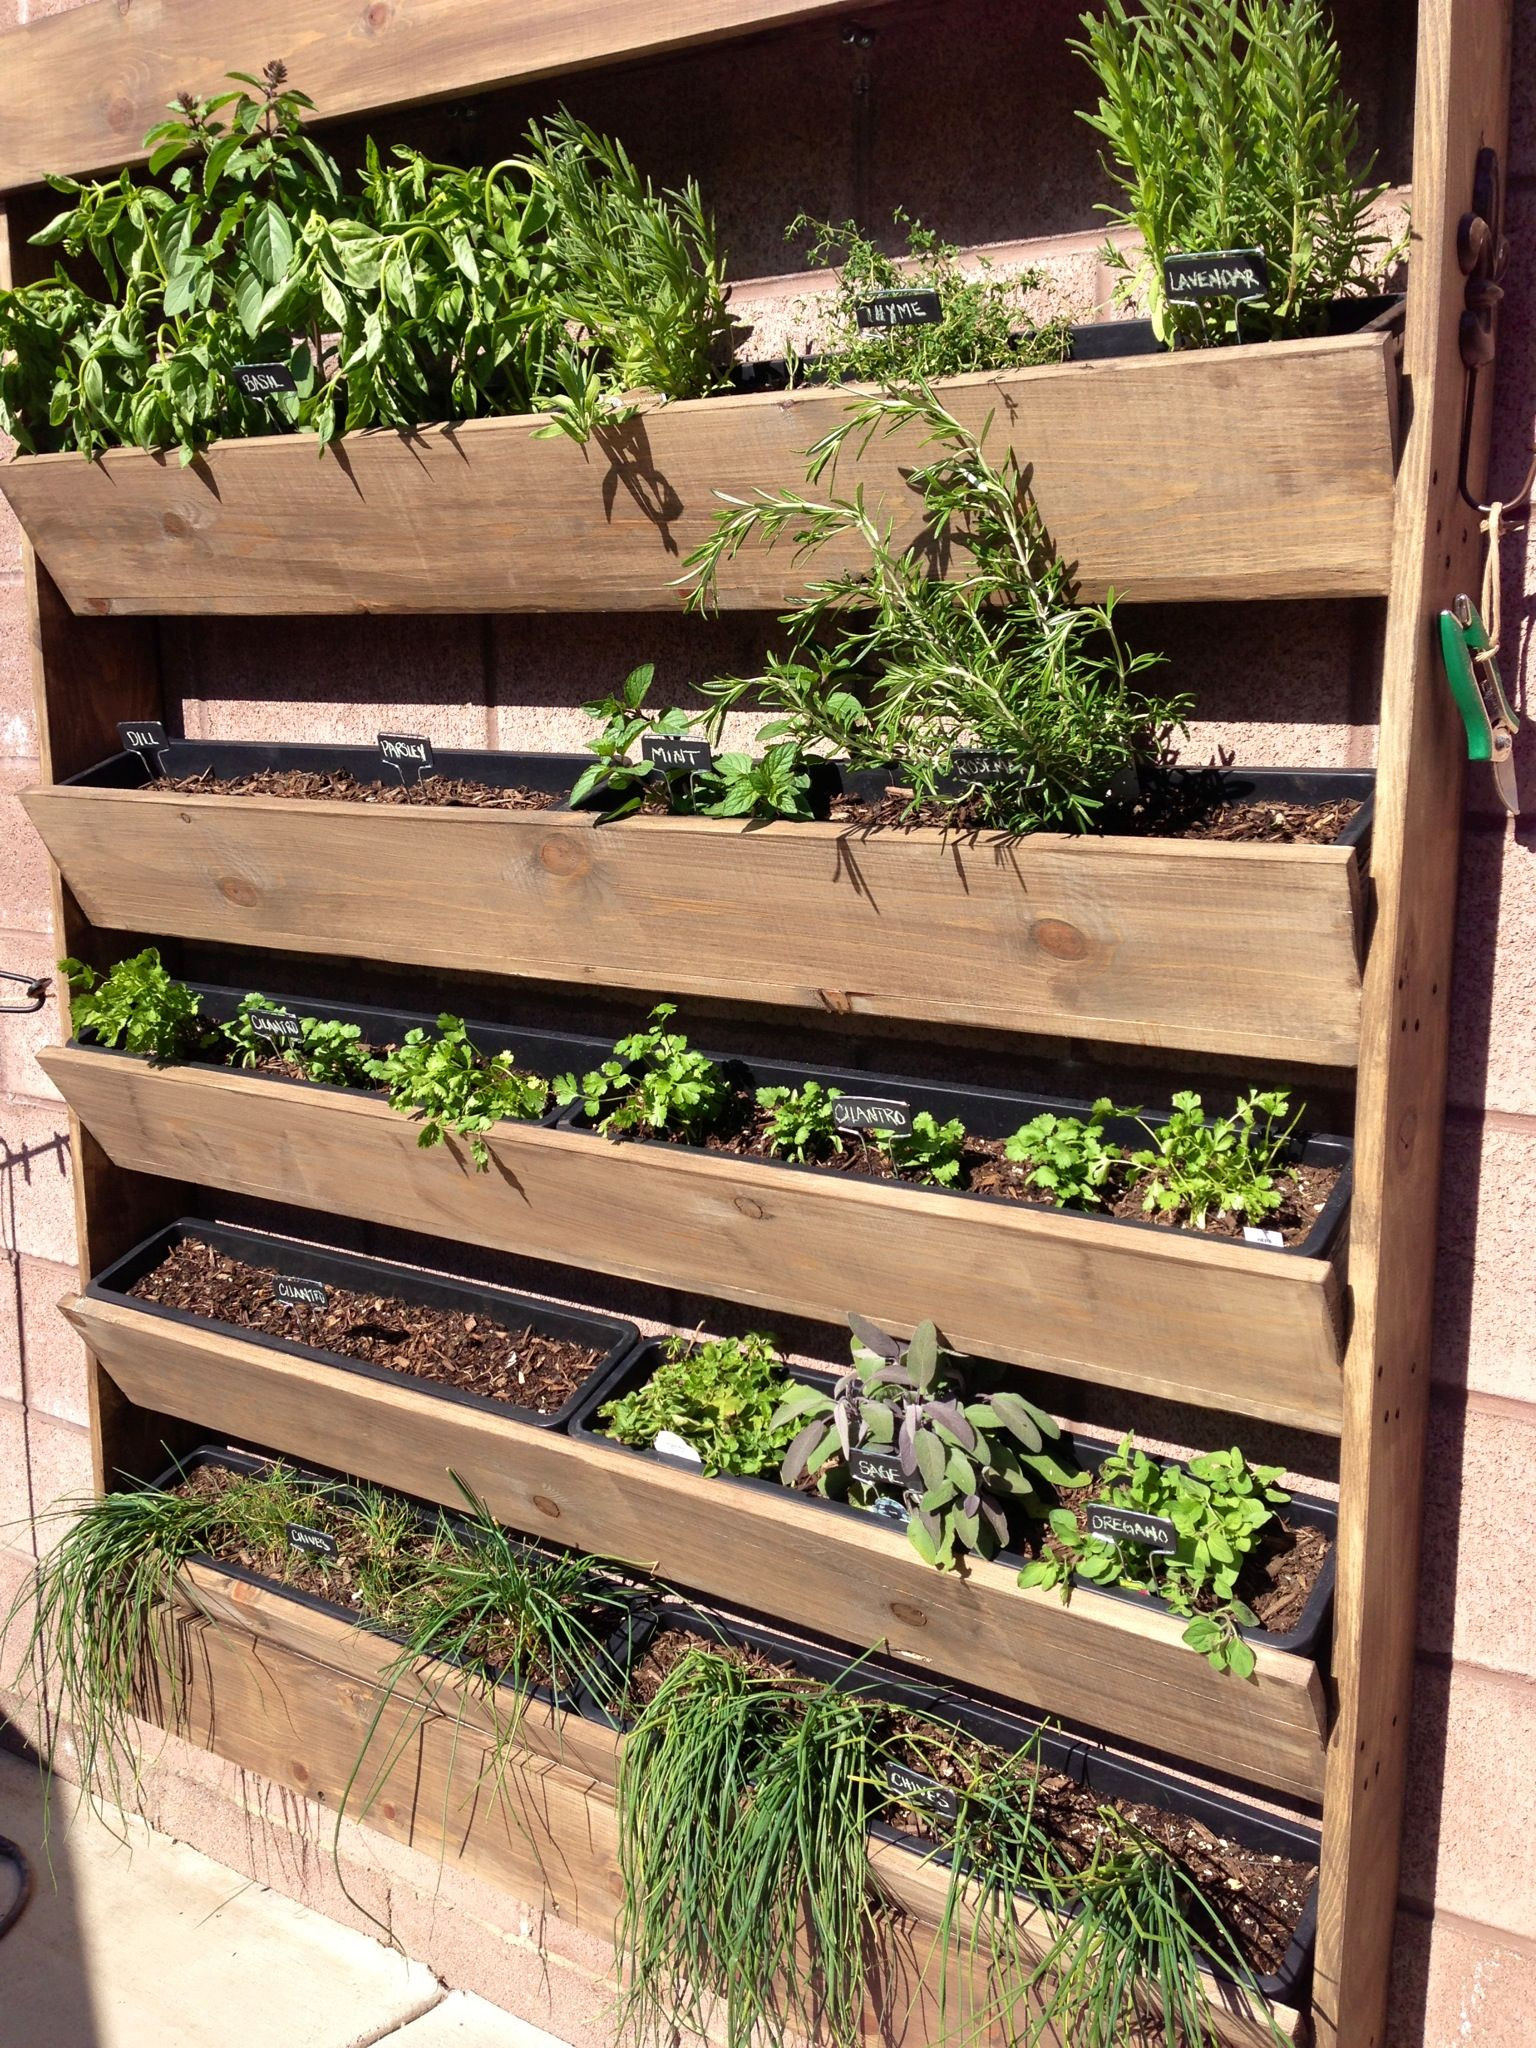 Kitchen Garden Planter Herb Wall Planter Garden Mrs Green Thumb Pinterest Shelves